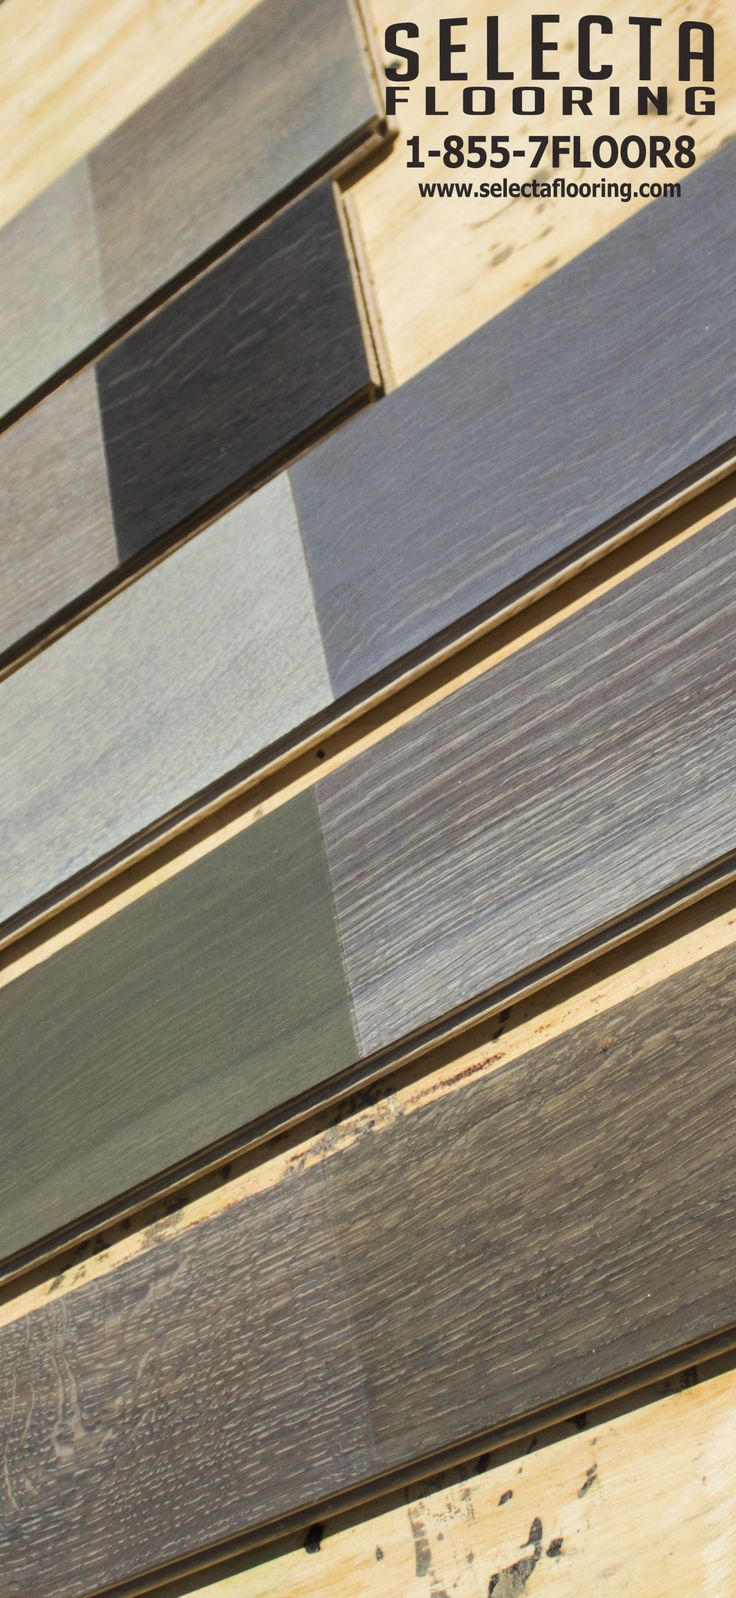 7 - Colors and Styles For Your Wood Floors